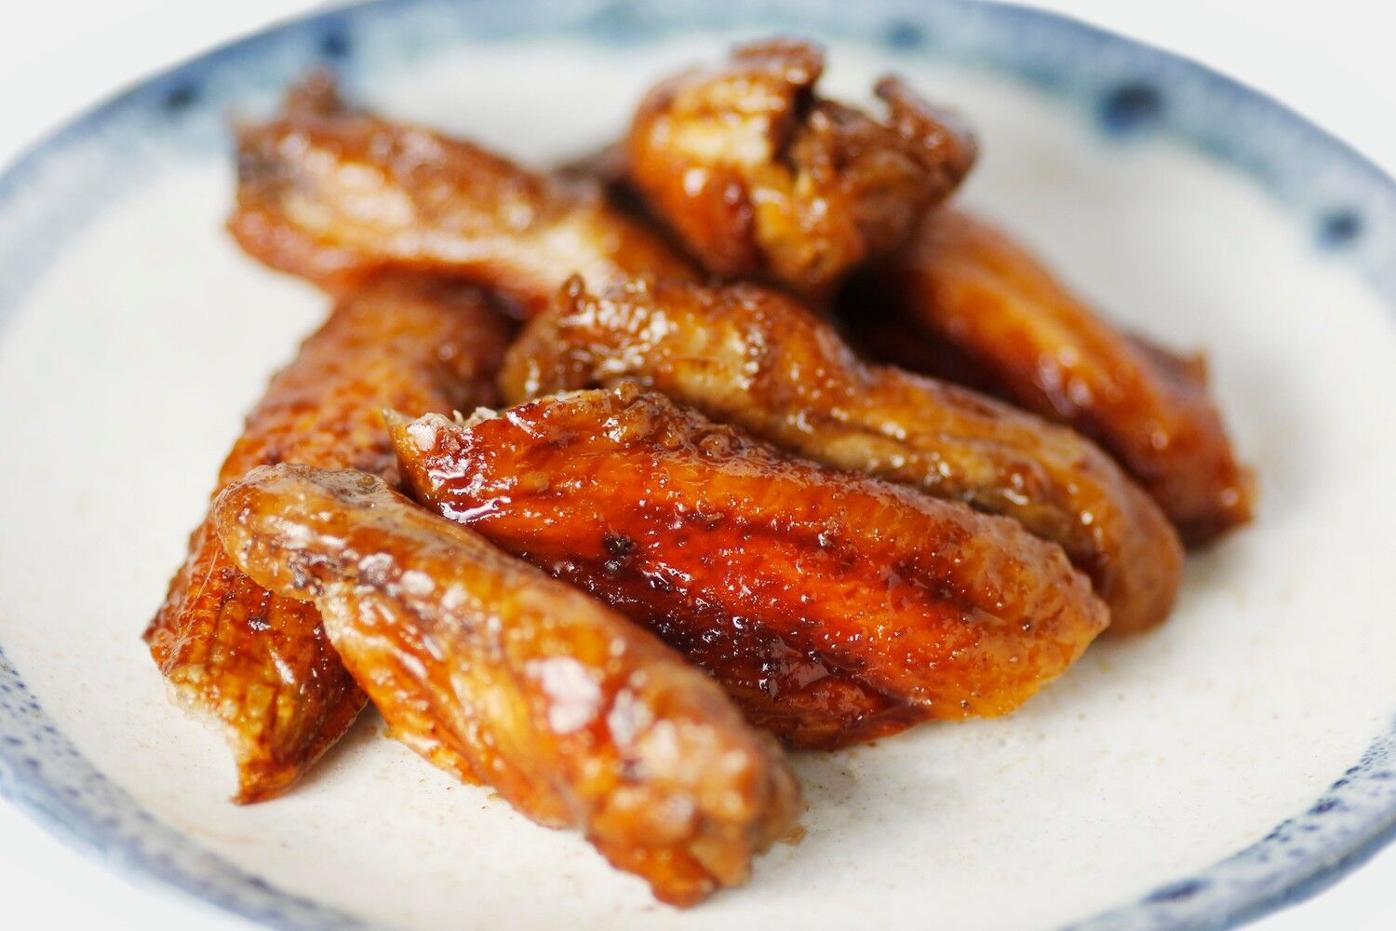 Go ahead, wing it on Super Bowl Sunday